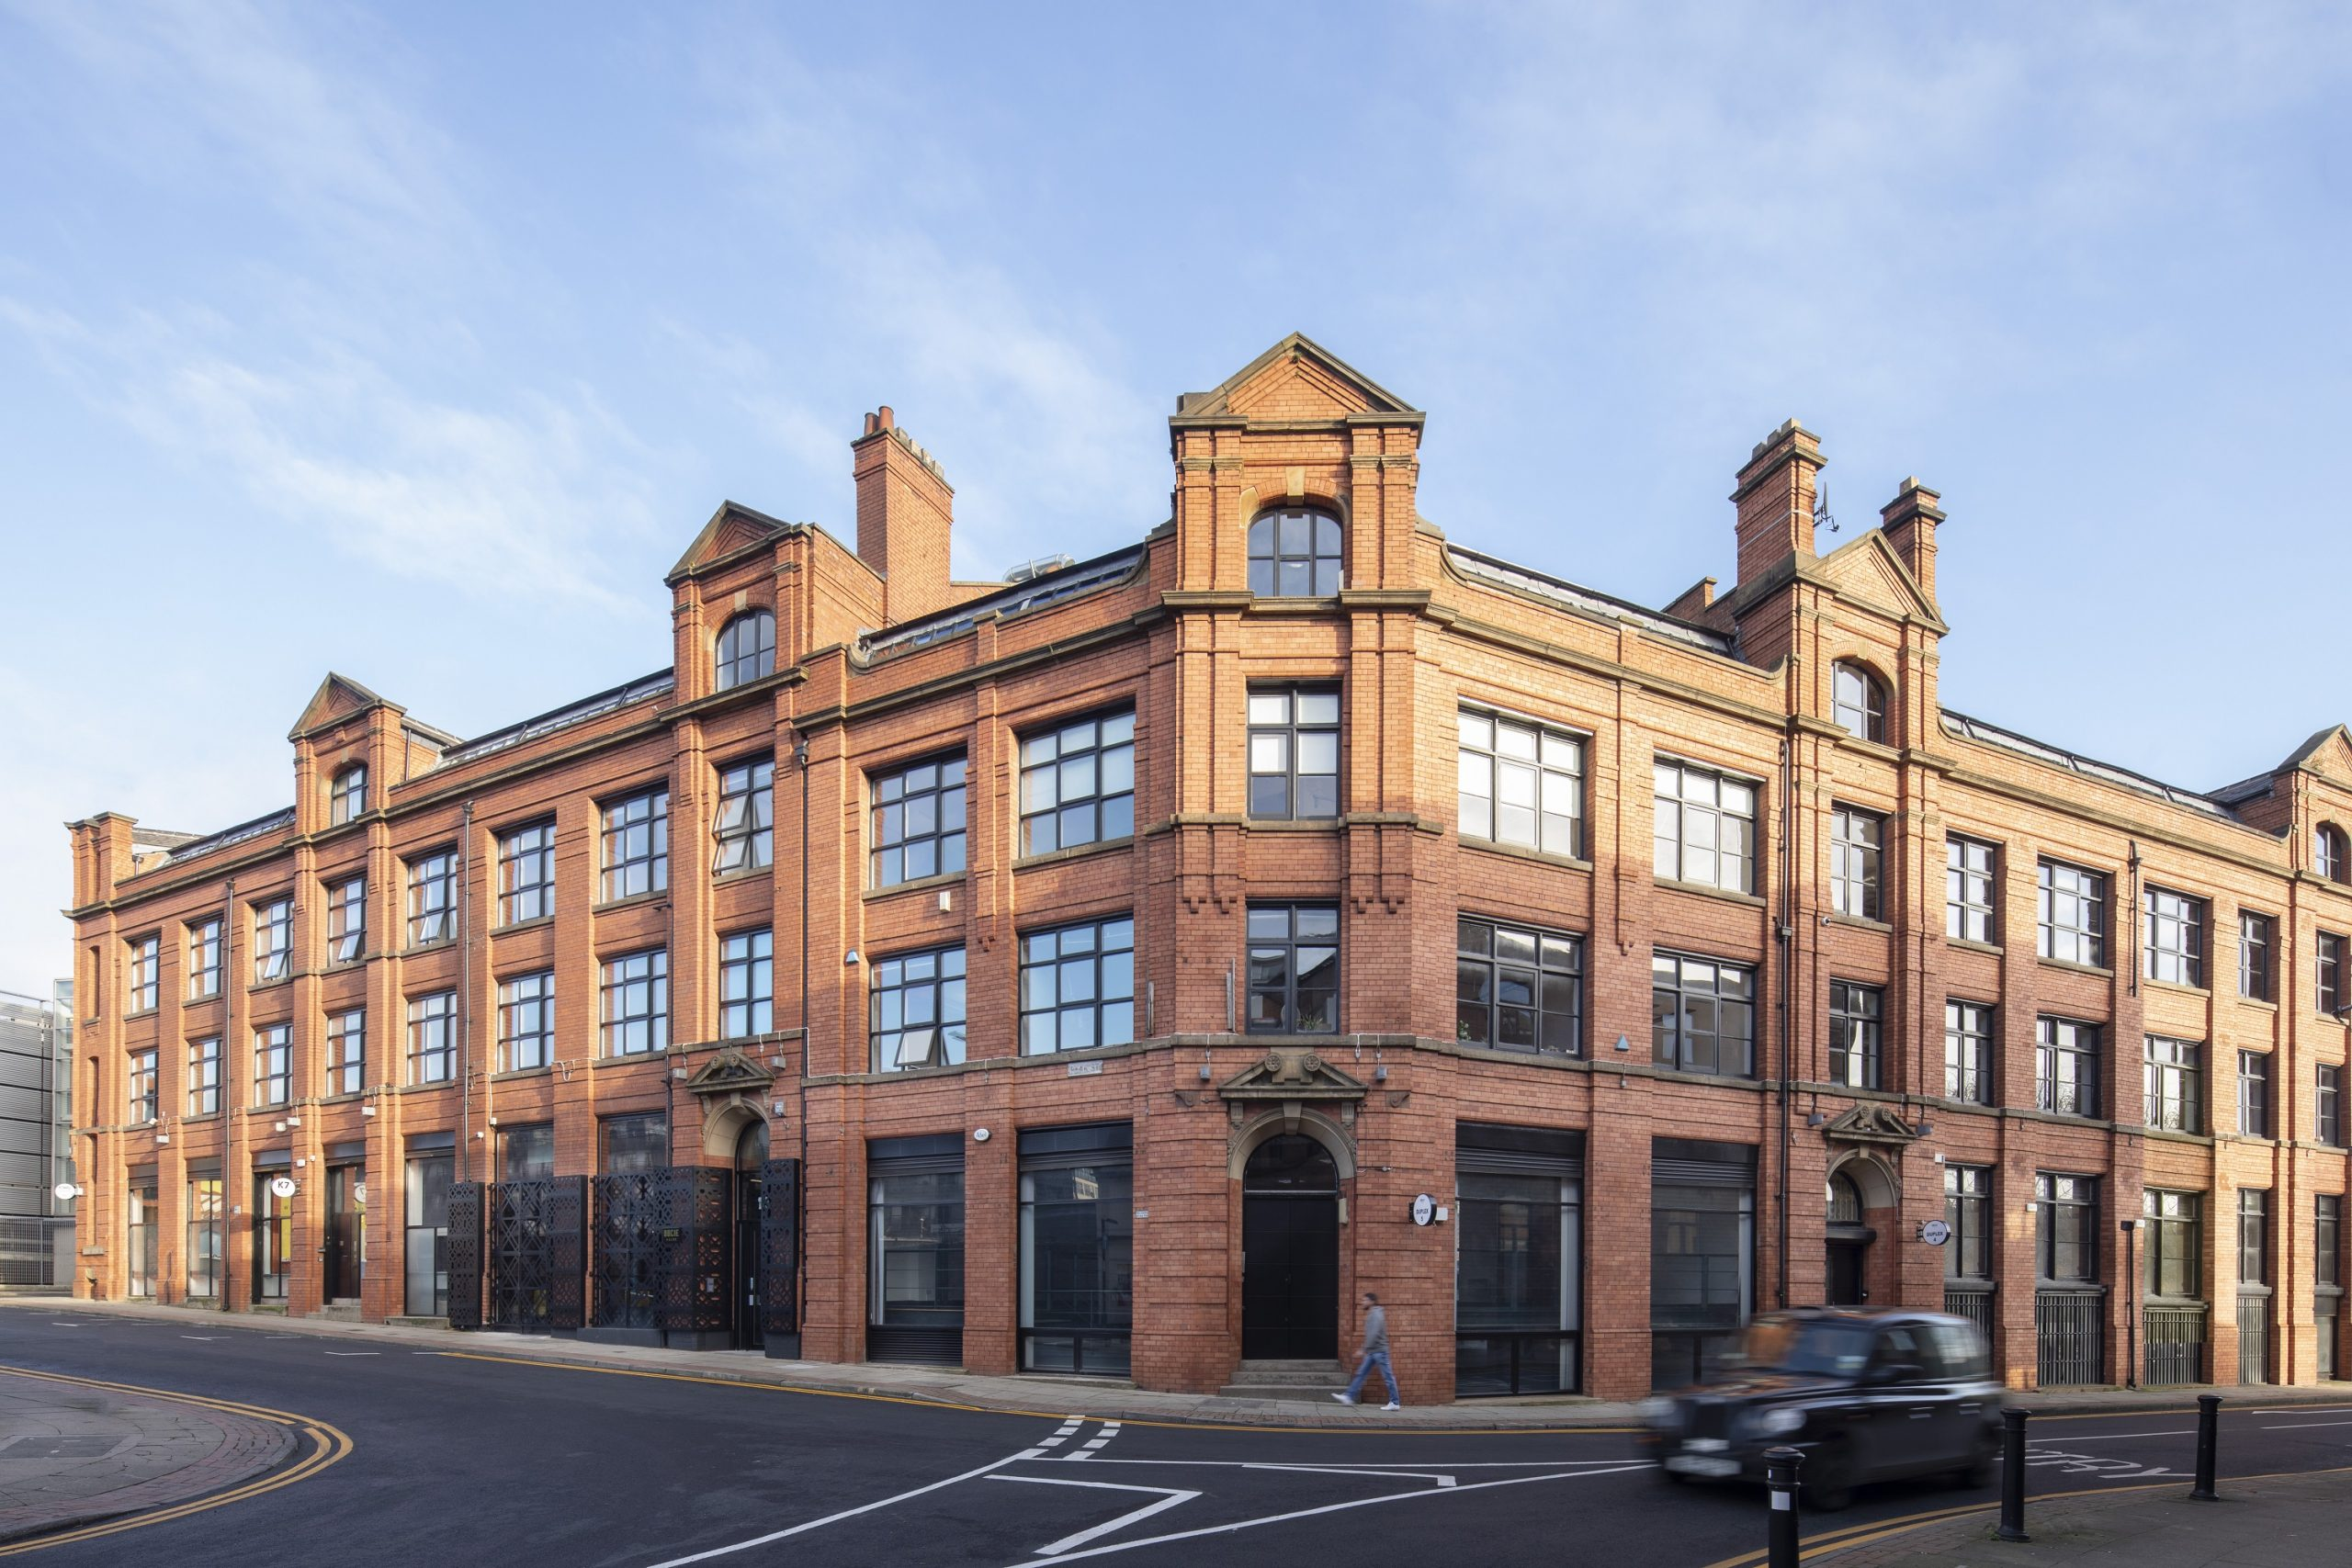 TCS SECURES NEW DUCIE HOUSE TENANT AS £2M WORKS COMPLETE